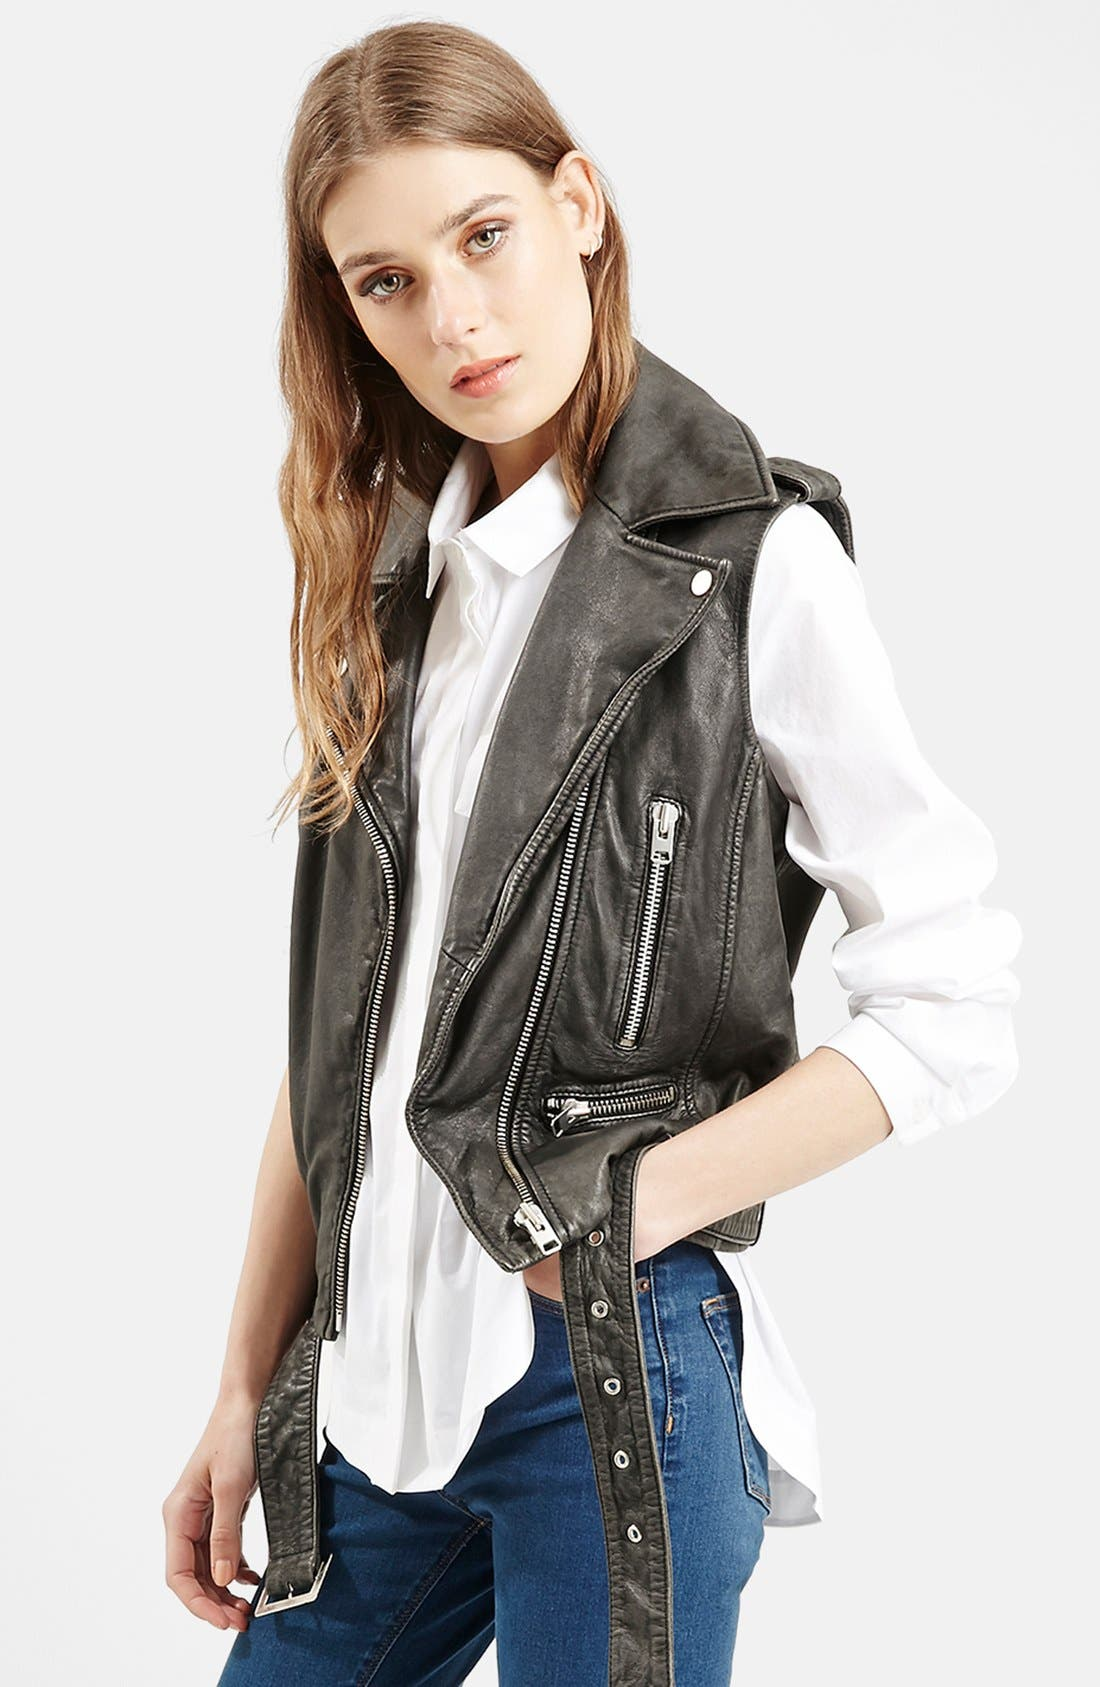 TOPSHOP, 'Sylvia' Leather Biker Vest, Main thumbnail 1, color, 001